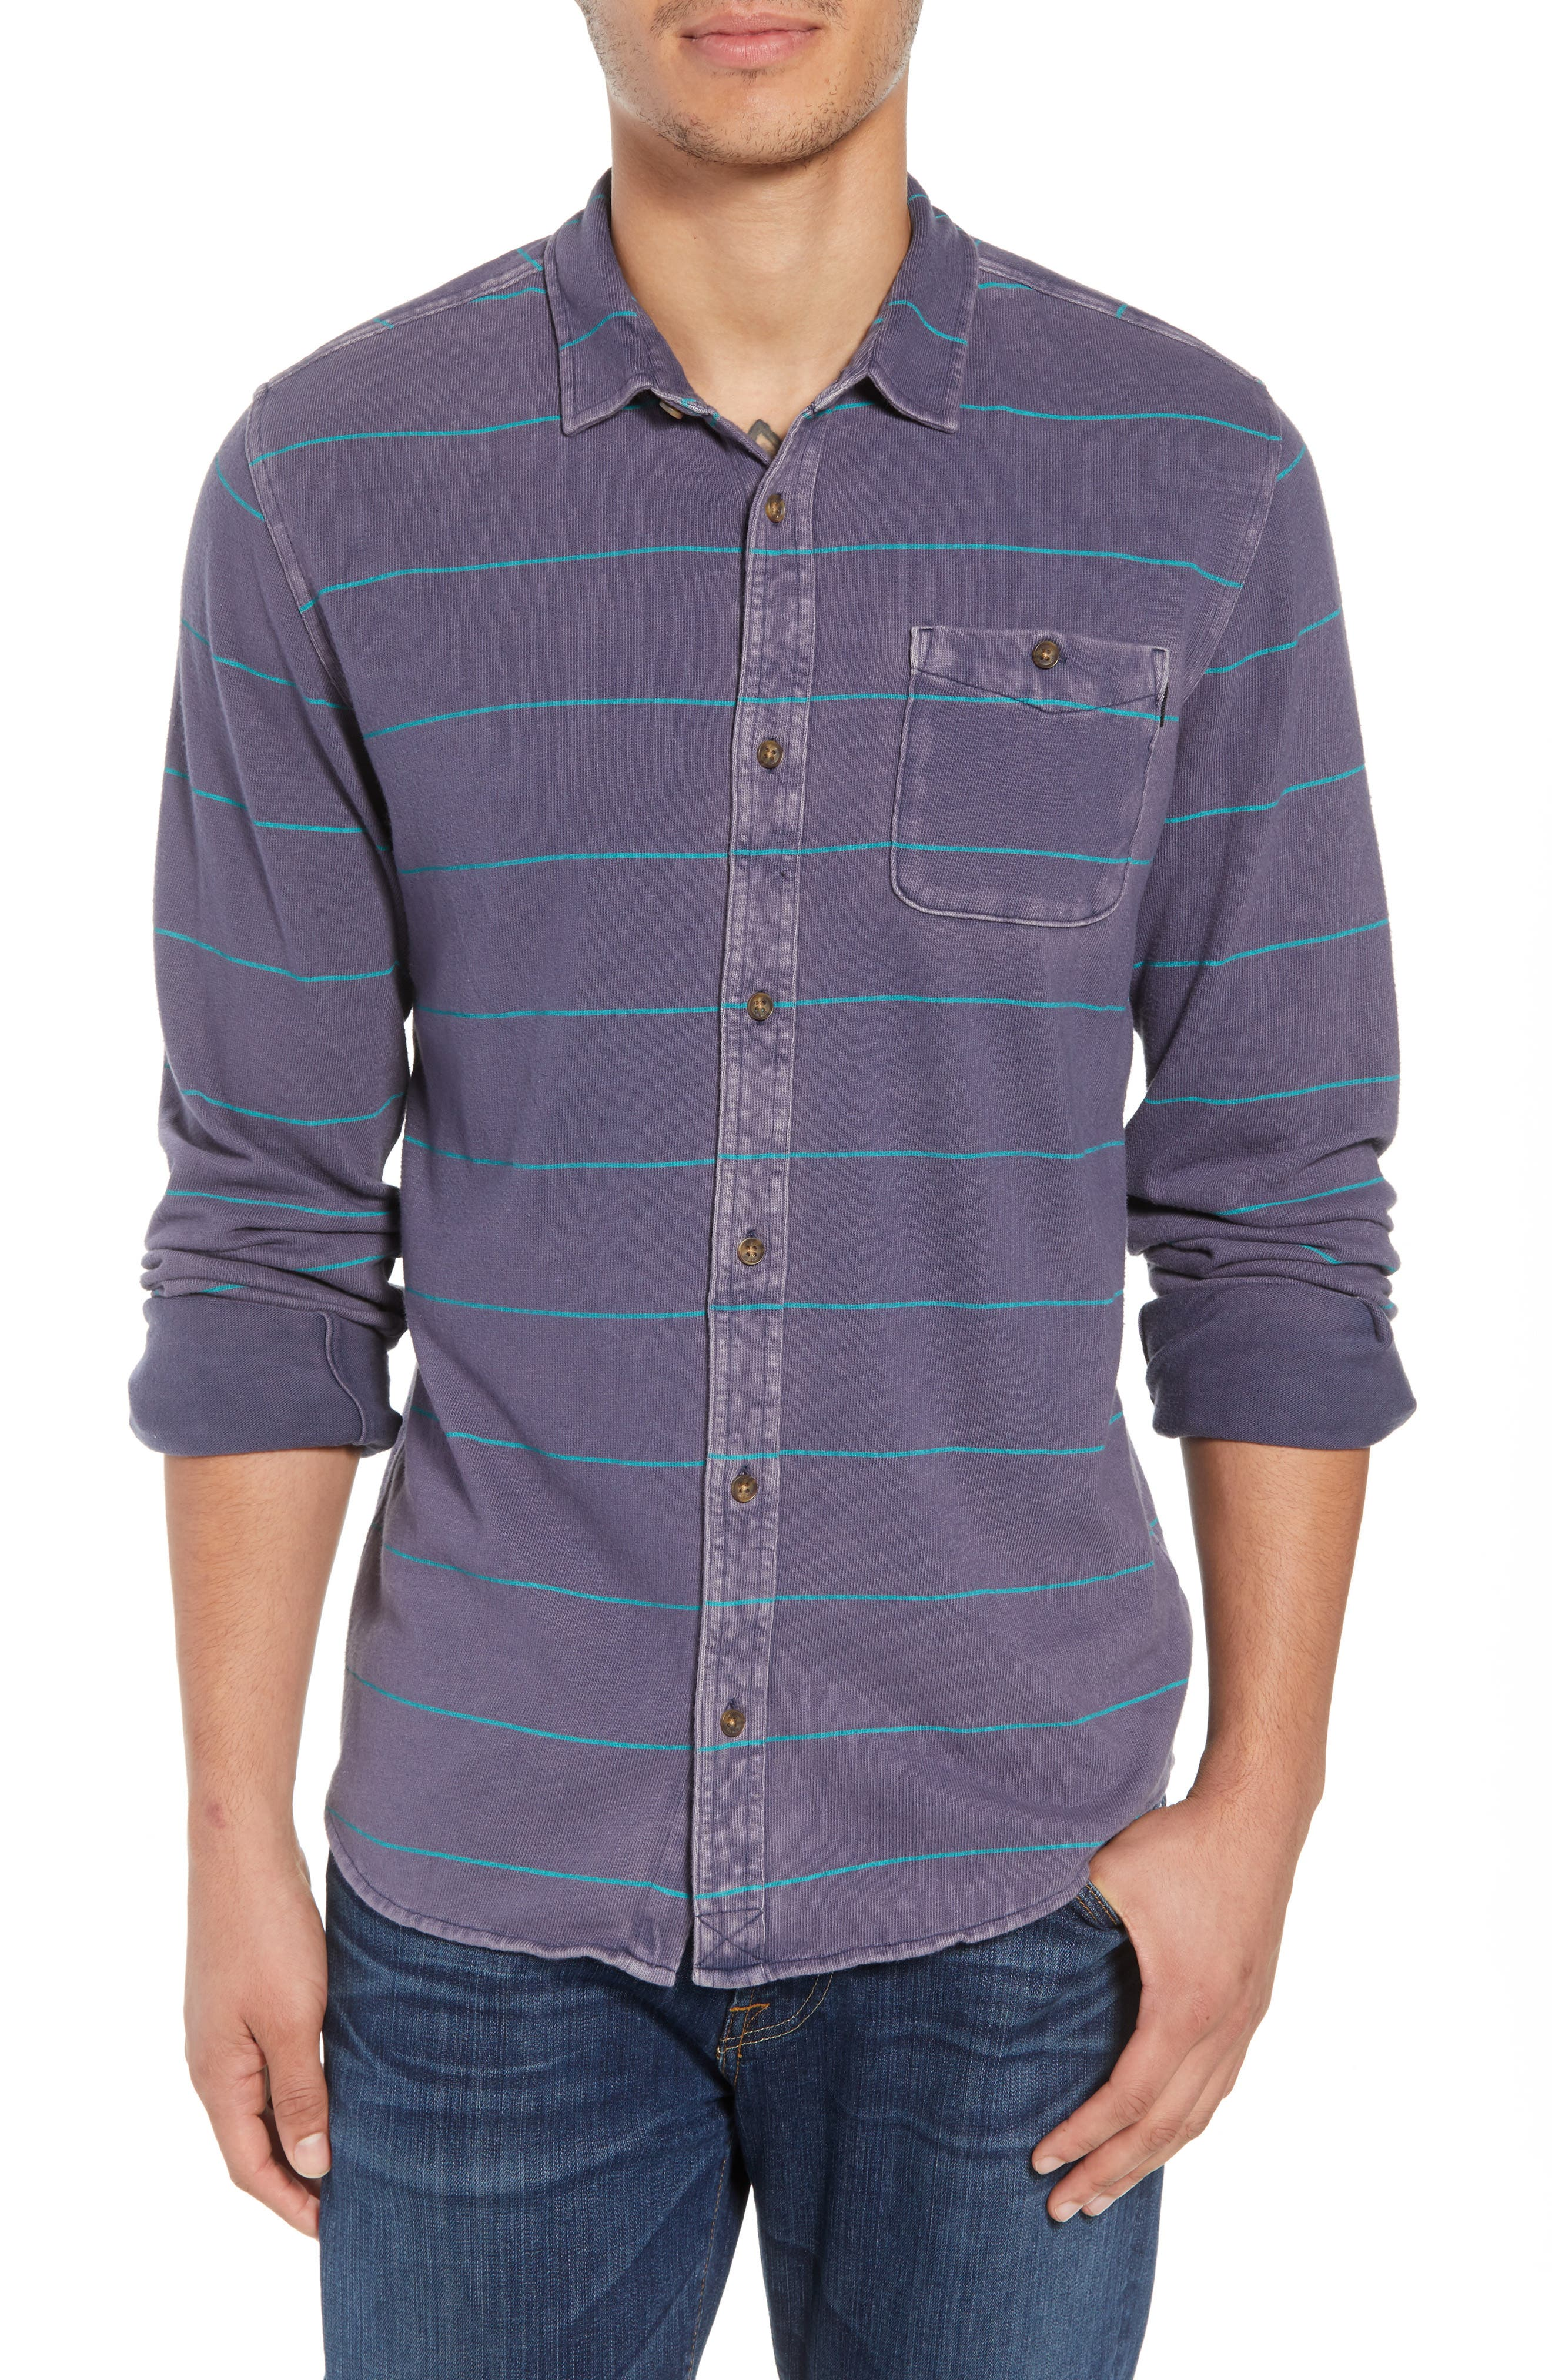 Cowell Knit Button-Up Shirt,                         Main,                         color, NAVY